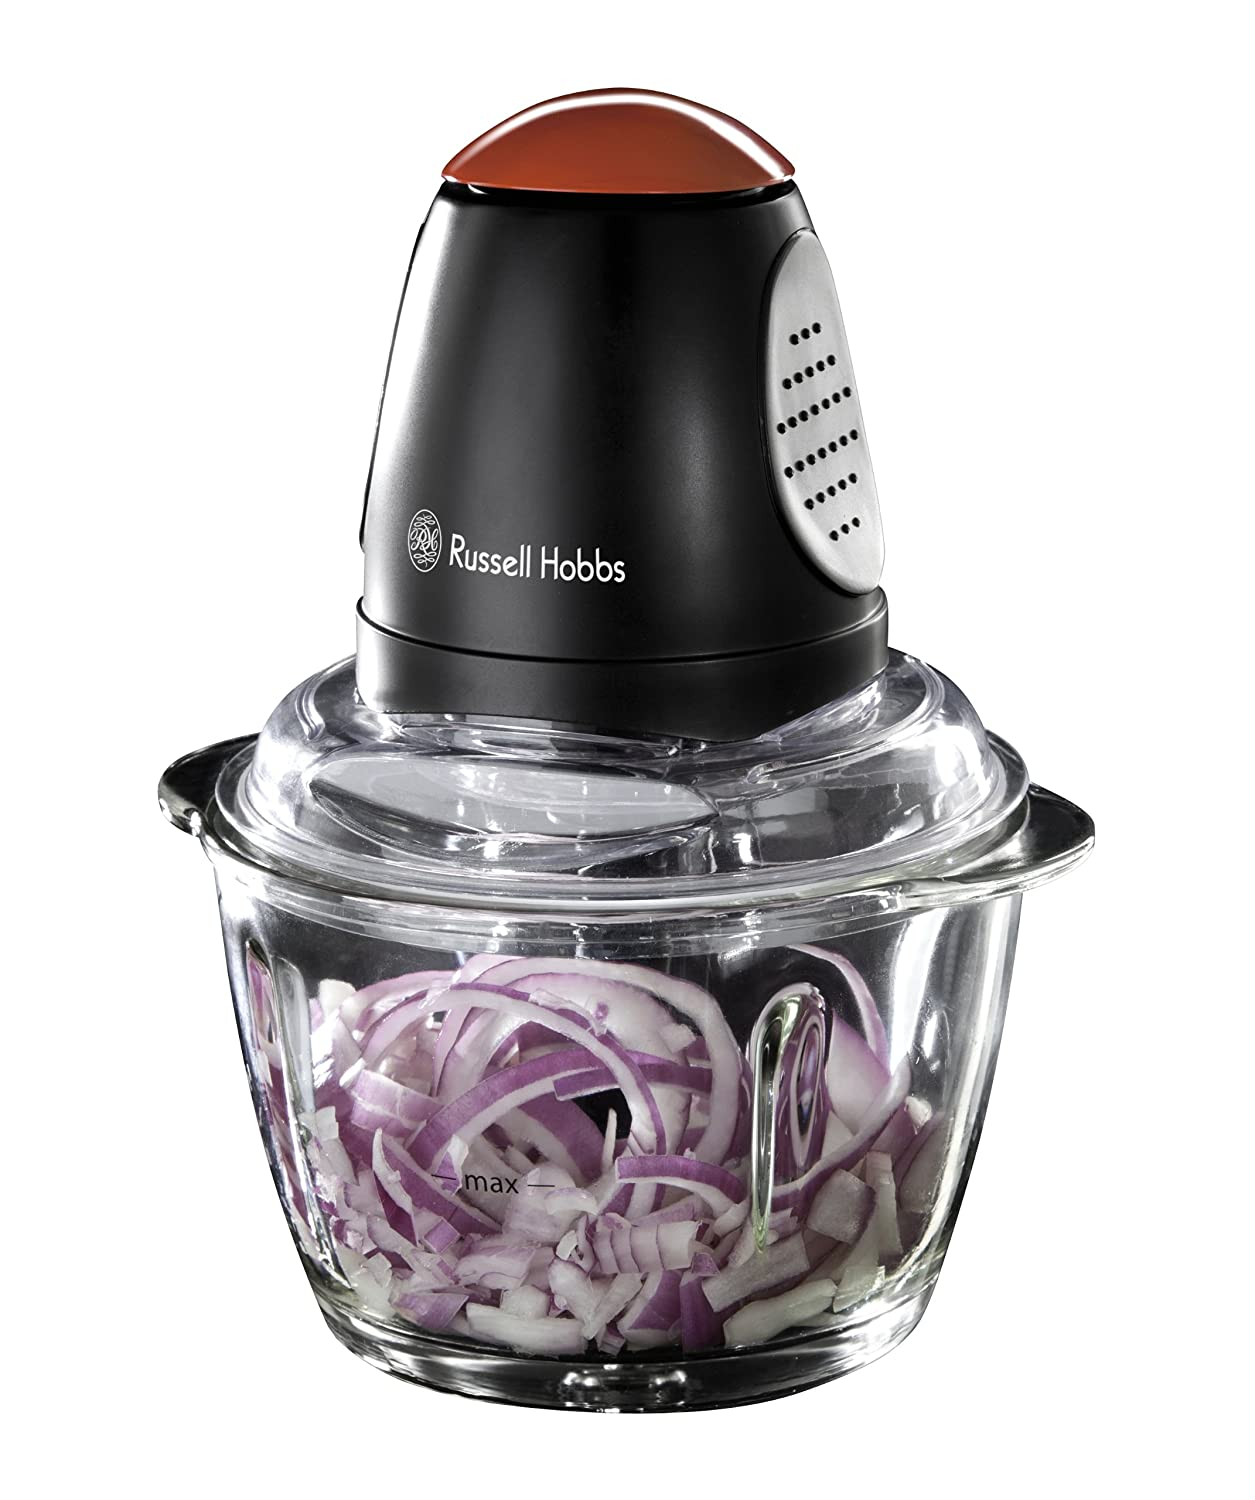 Russell Hobbs 18558 RU-18558 Desire Mini Chopper with 500 ml glass bowl, Glass, 380 W, 1 Litre, Black and Red